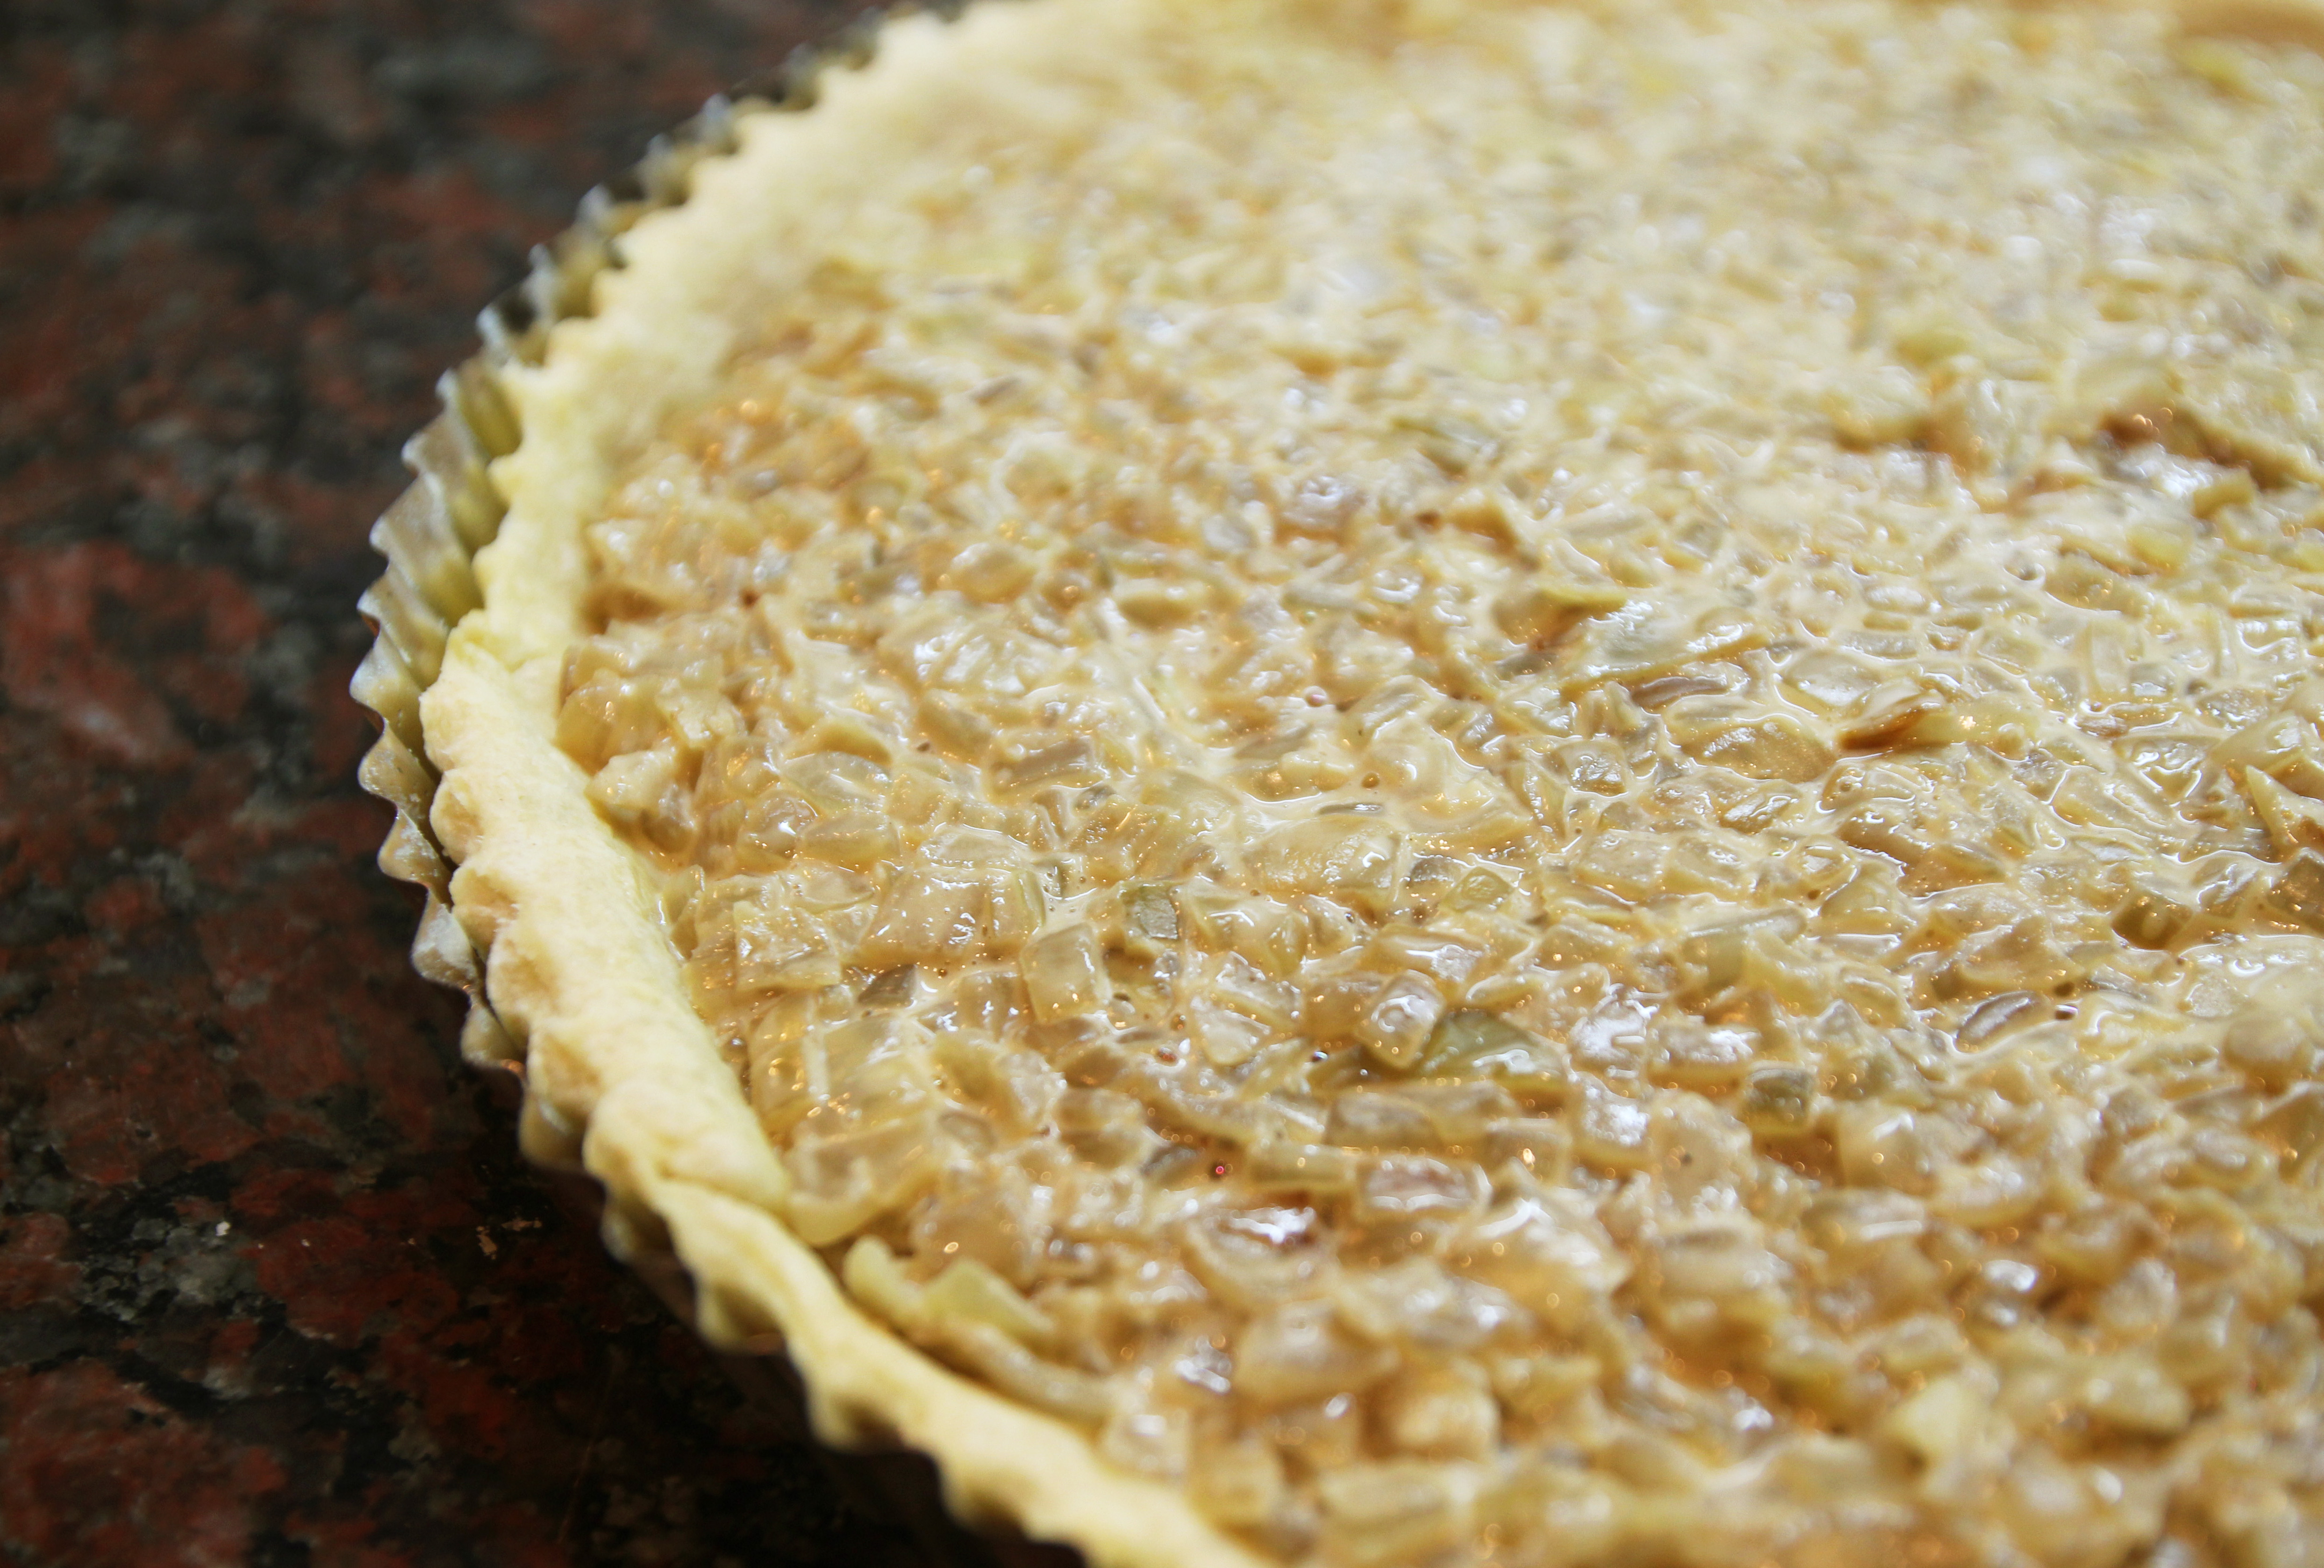 Caramelized Onion Quiche - Dish by Dish